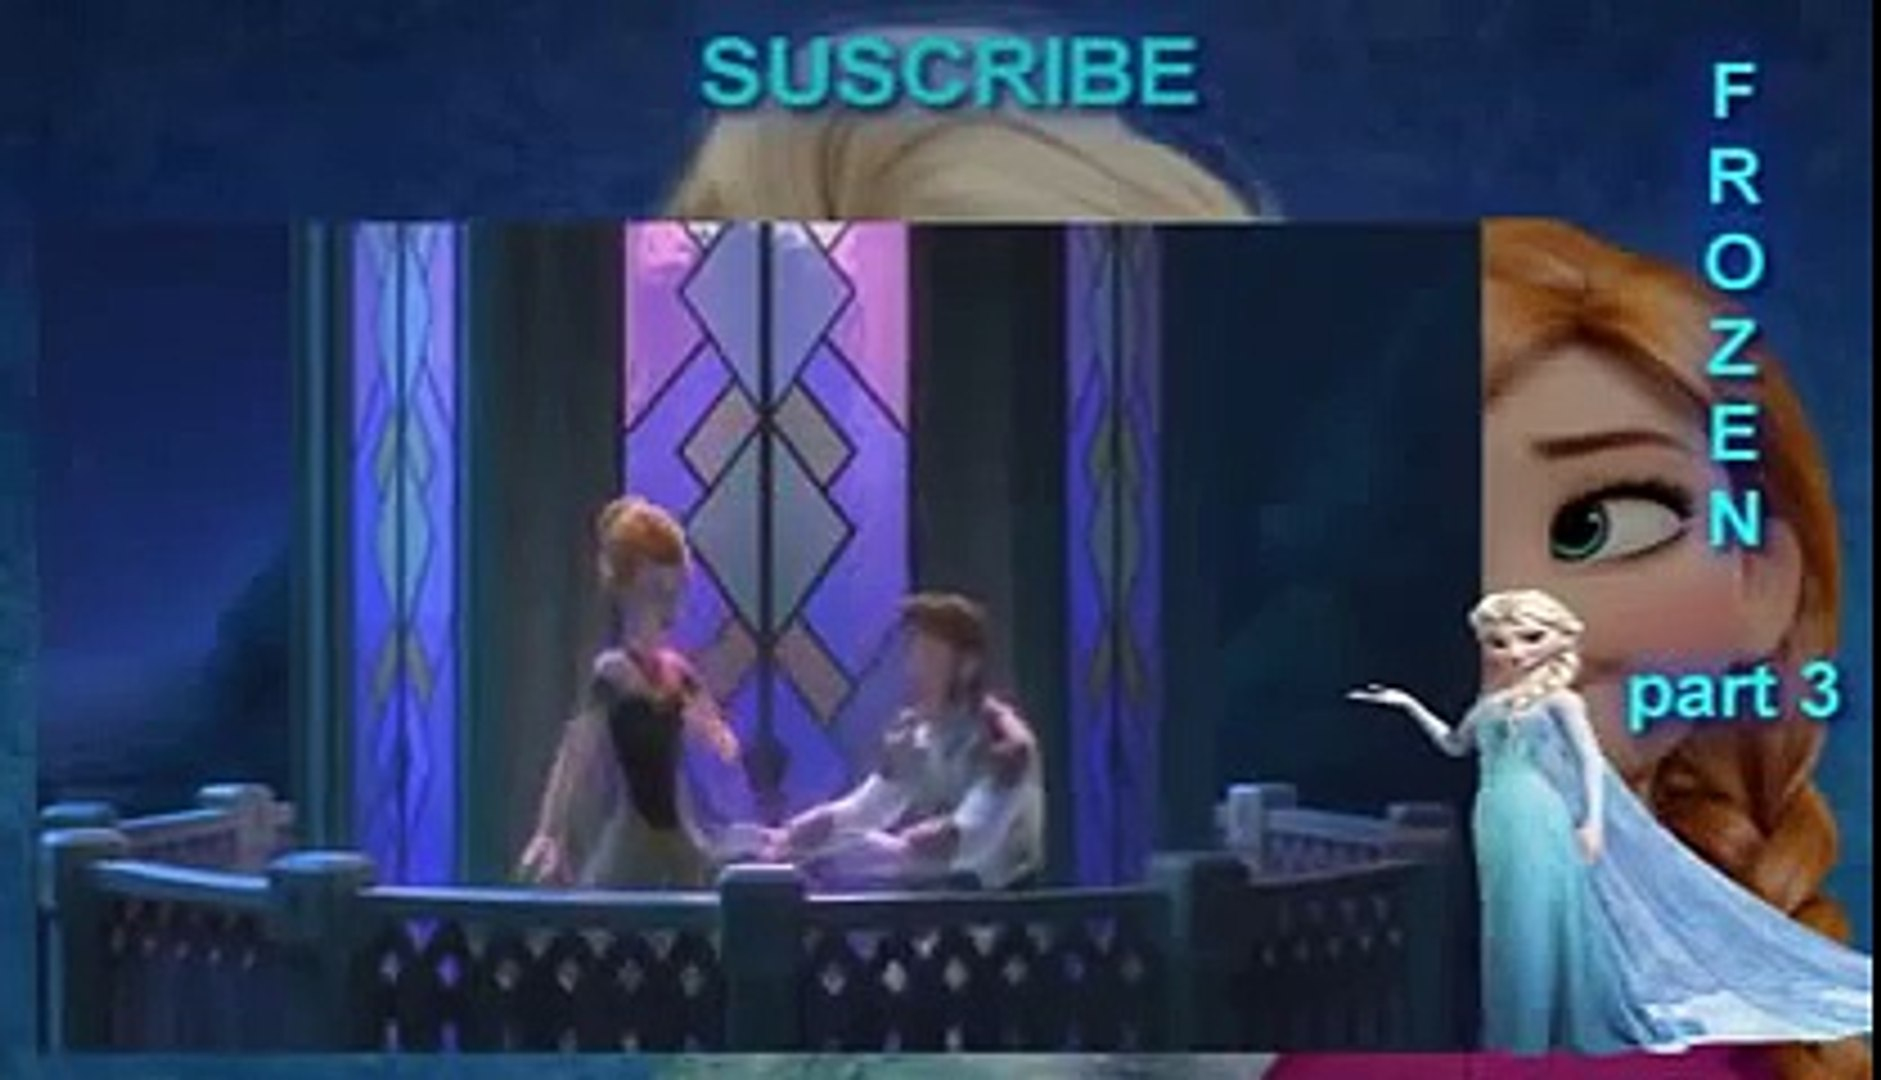 Frozen Disney Una Aventura Congelada Pelicula Completa Español Latino Hd Part 3 Video Dailymotion